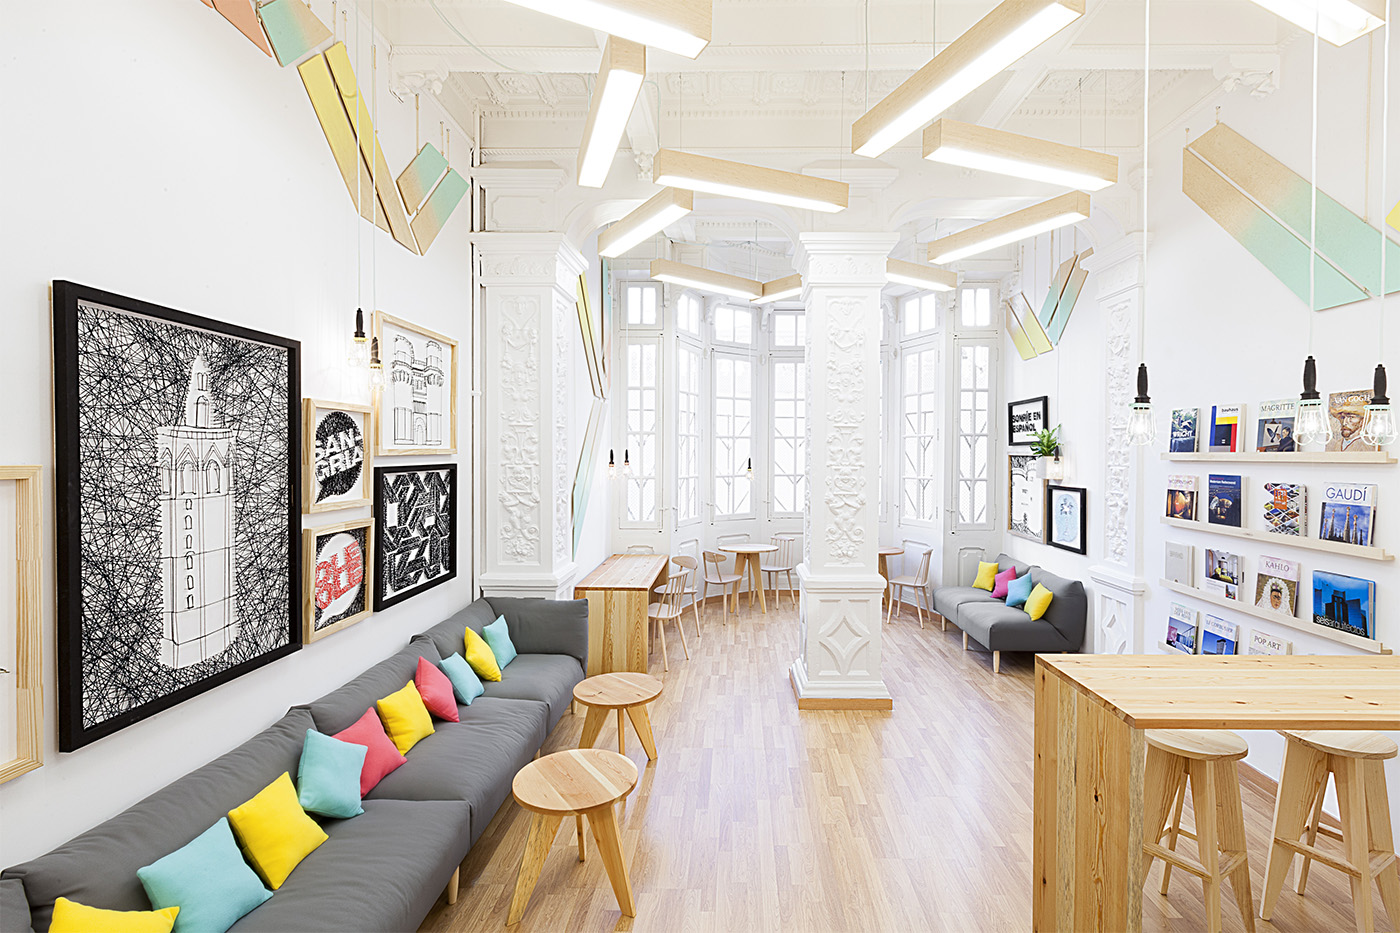 language school with a colorful interior